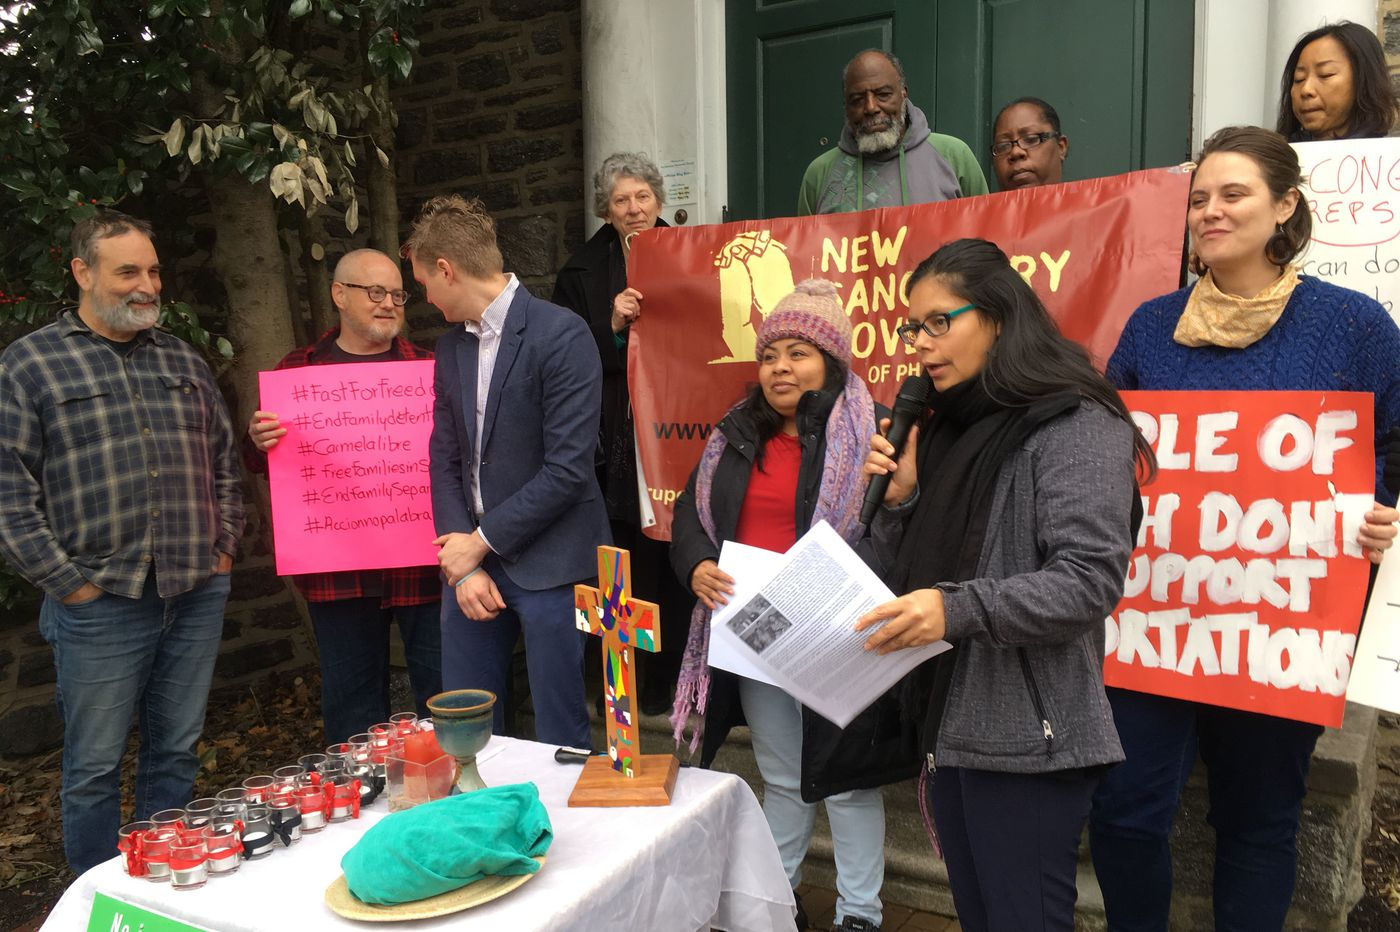 An undocumented immigrant marked two years in sanctuary in a Philadelphia church by starting a weekly fast